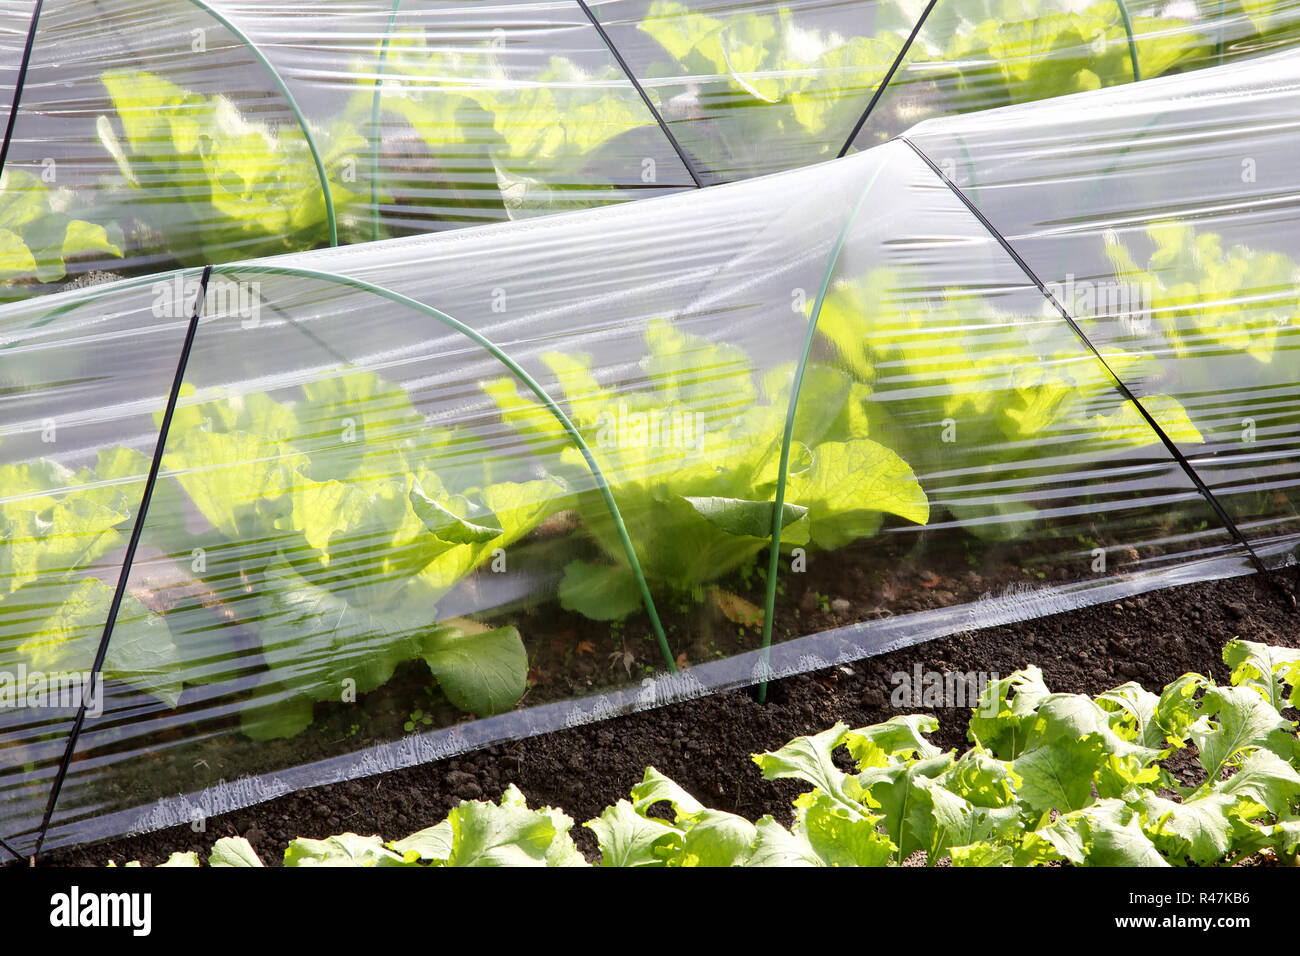 Plastic greenhouse for farming of vegetables - Stock Image